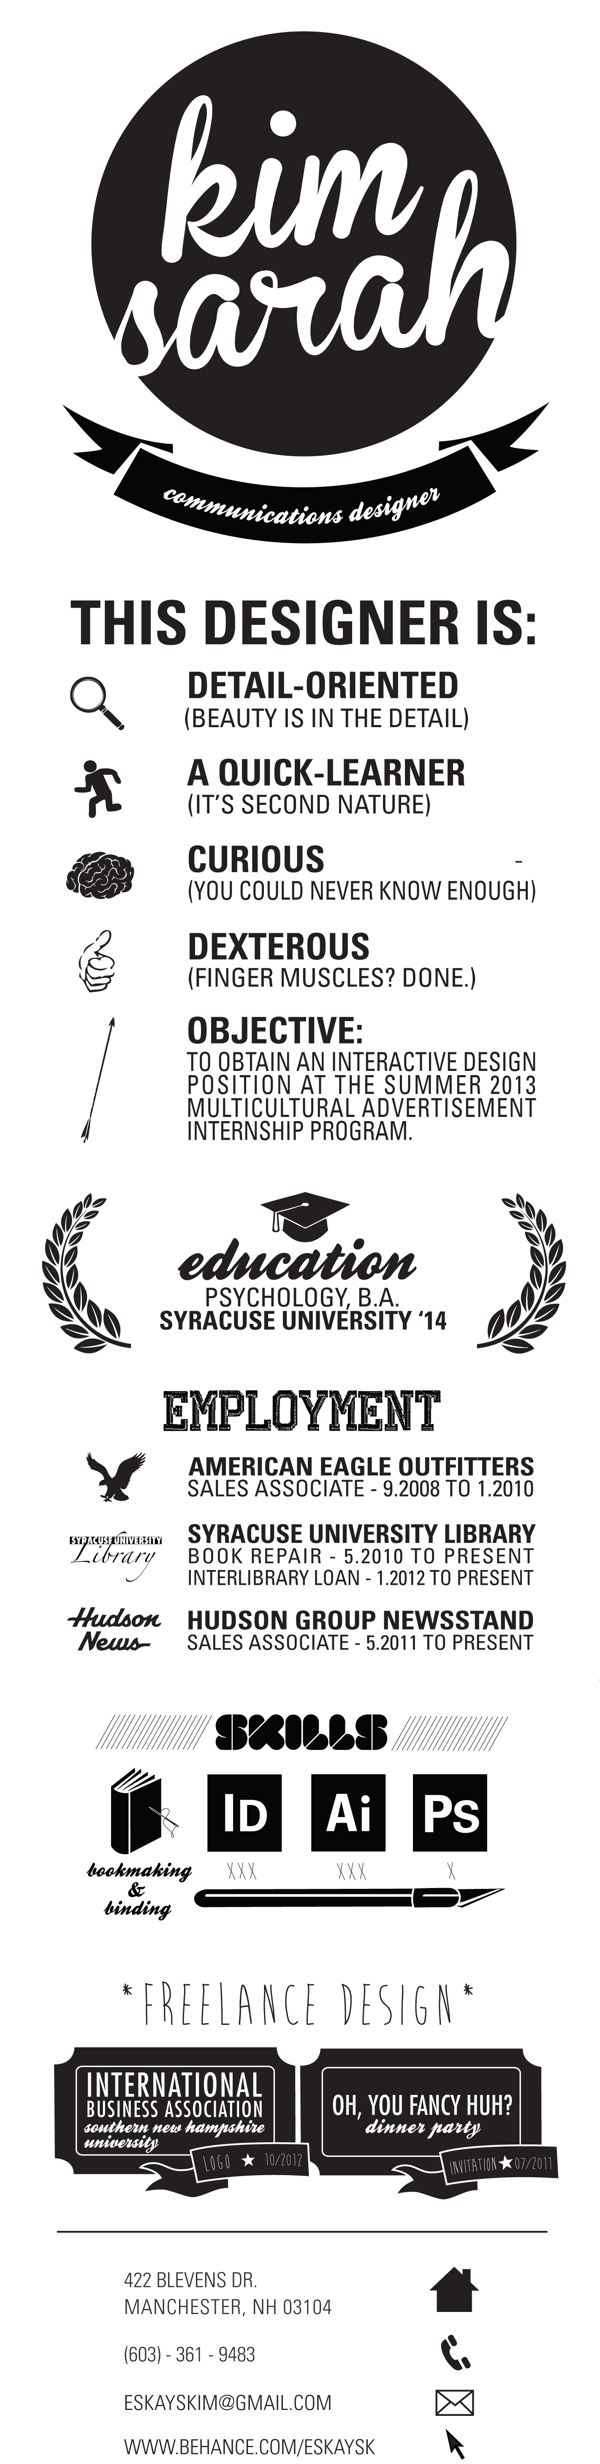 Picnictoimpeachus  Splendid  Ideas About Infographic Resume On Pinterest  My Portfolio  With Great  Ideas About Infographic Resume On Pinterest  My Portfolio Resume And Resume Design With Agreeable Resume For College Student Still In School Also Resume Linked In In Addition Field Engineer Resume And Up To Date Resume As Well As Cover Page Of Resume Additionally How To Make A Functional Resume From Pinterestcom With Picnictoimpeachus  Great  Ideas About Infographic Resume On Pinterest  My Portfolio  With Agreeable  Ideas About Infographic Resume On Pinterest  My Portfolio Resume And Resume Design And Splendid Resume For College Student Still In School Also Resume Linked In In Addition Field Engineer Resume From Pinterestcom